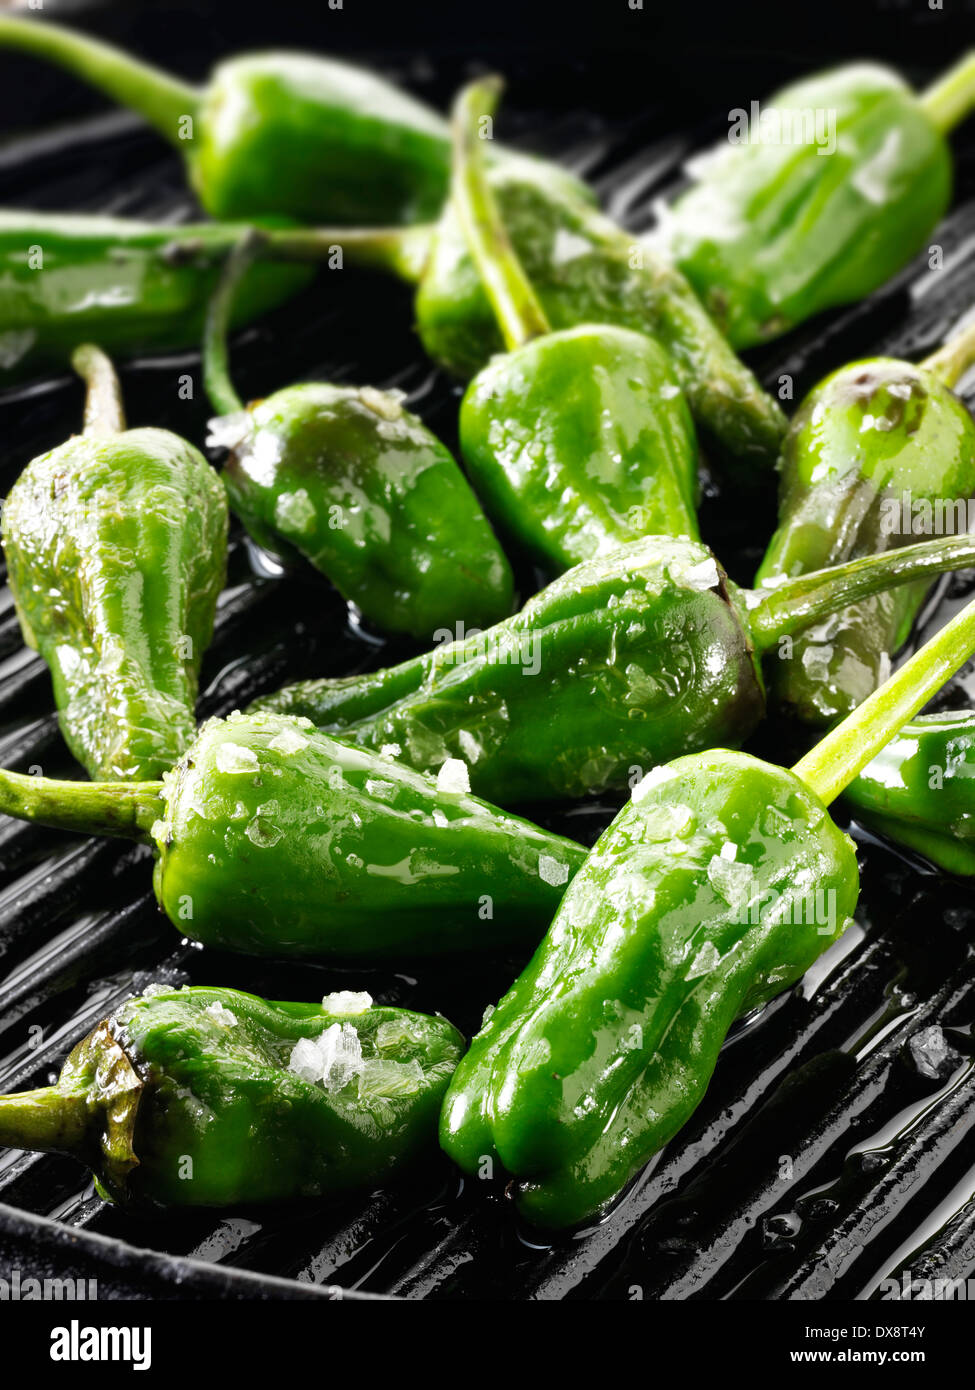 Griddled whole padron chillis - Stock Image